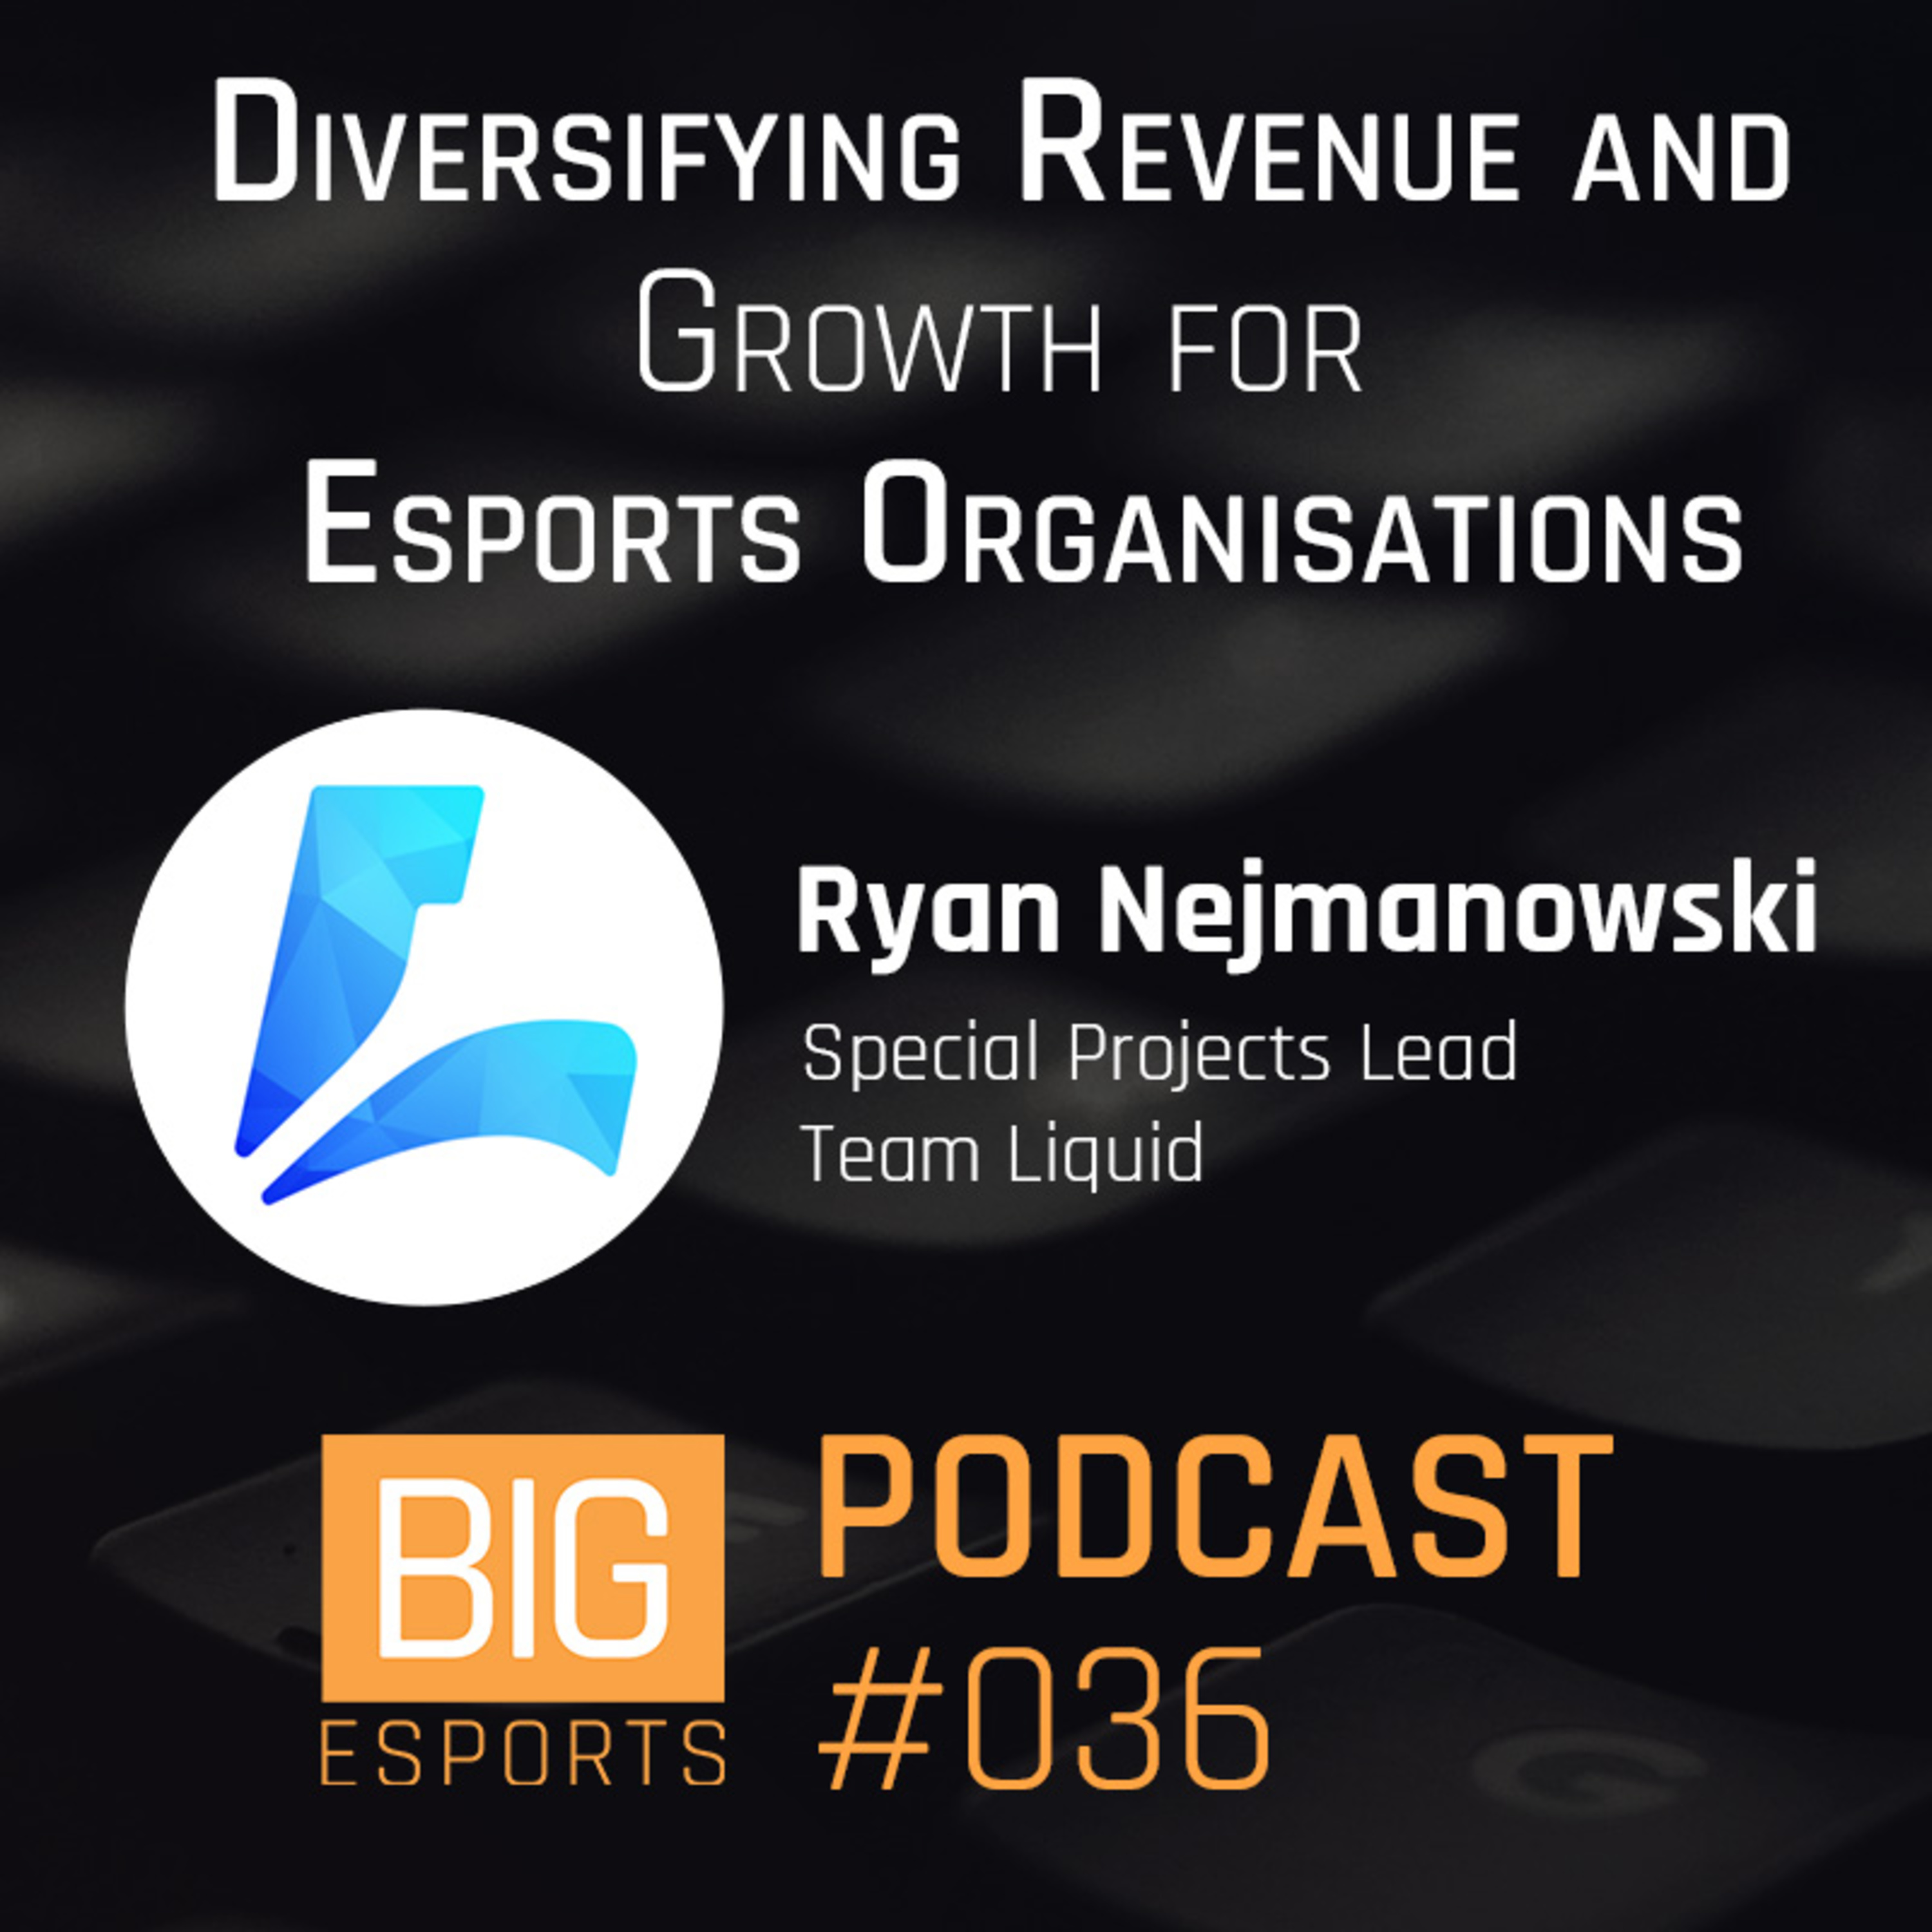 #036 - Diversifying Growth for Esports Organisations